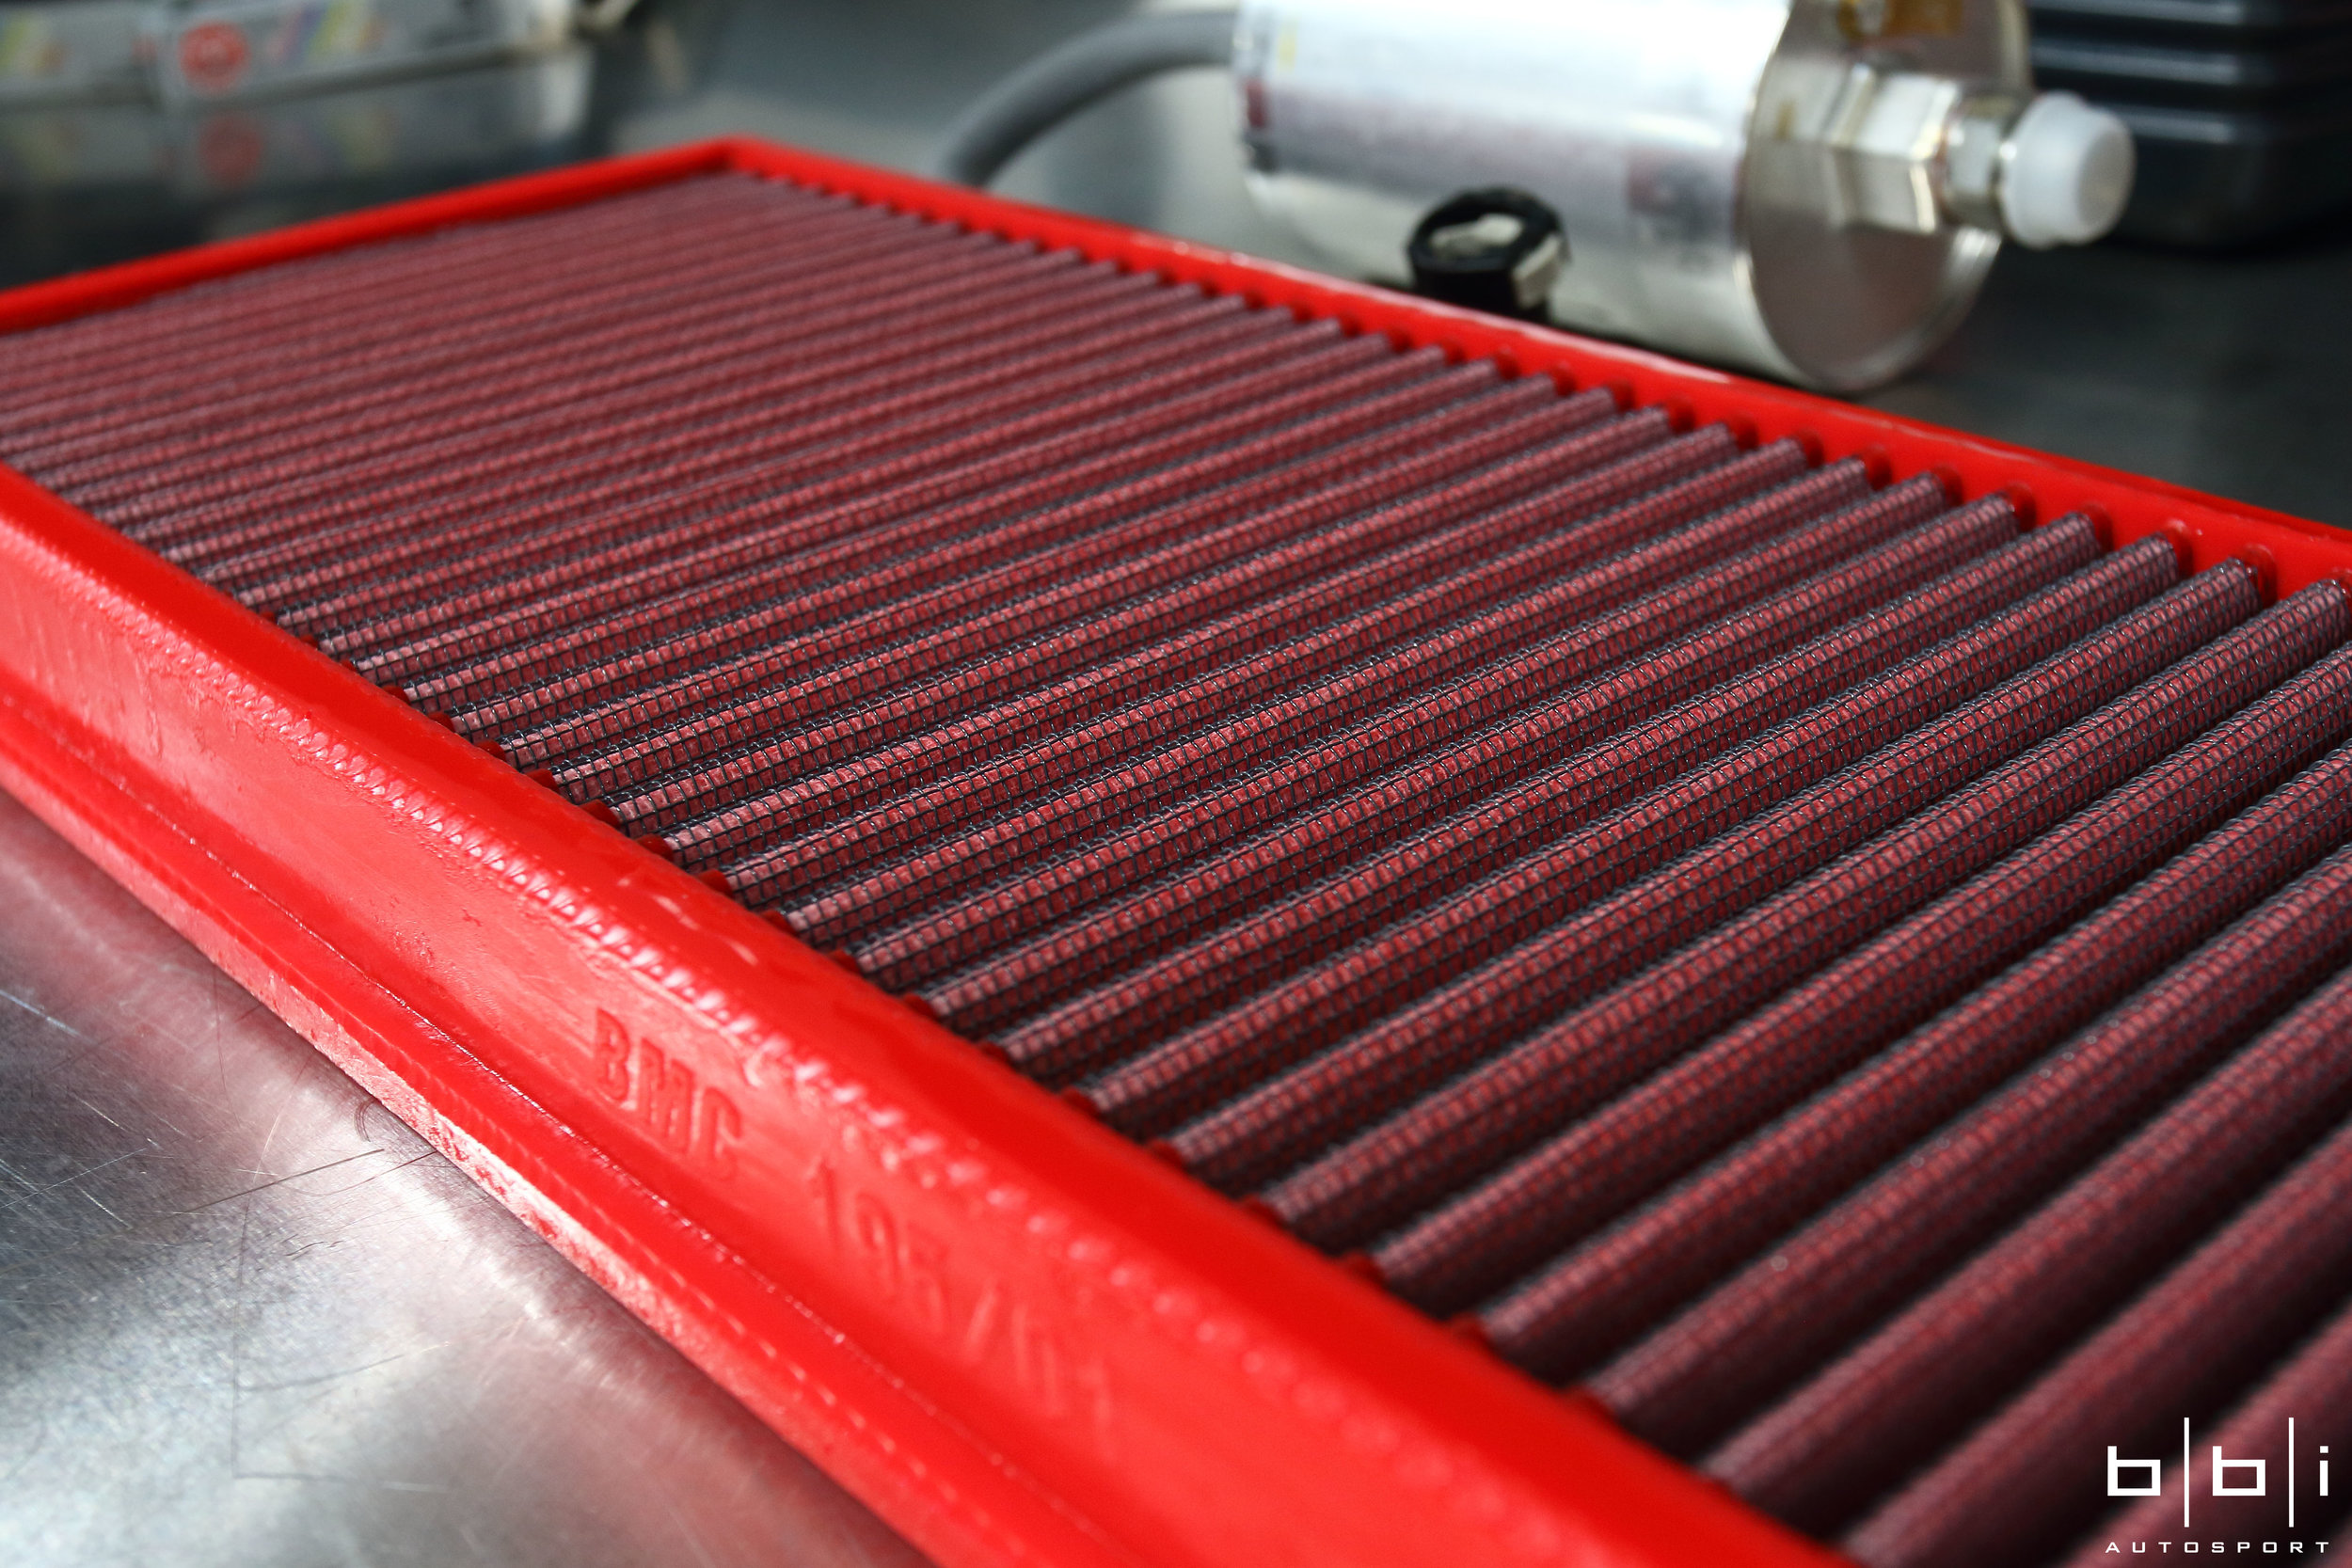 To help the engine breathe a little easier, BMC F1 Replacement Air Filters is made of a washable cotton material that provides nearly 40% greater airflow than paper, enclosed in an alloy mesh screen which helps the filter keep its shape and protects against larger debris and dirt. The increased flow of air through the filter provides a steady stream of clean air to the engine, resulting in much more consistent and efficient power.